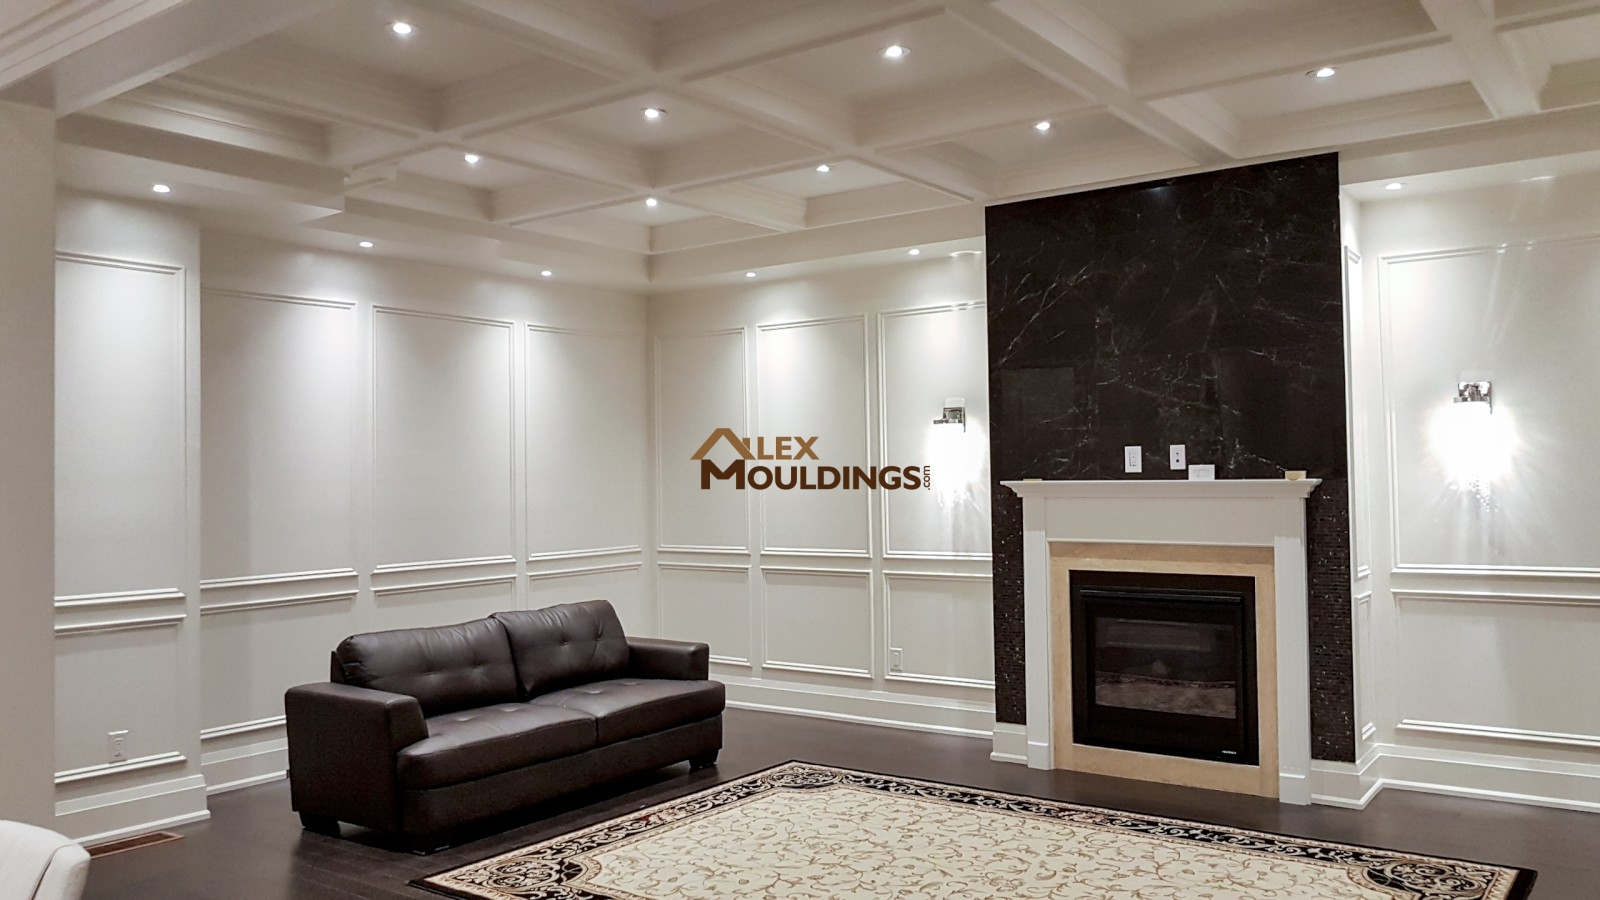 Design Your Ceilings And Walls And Transform Plain Rooms